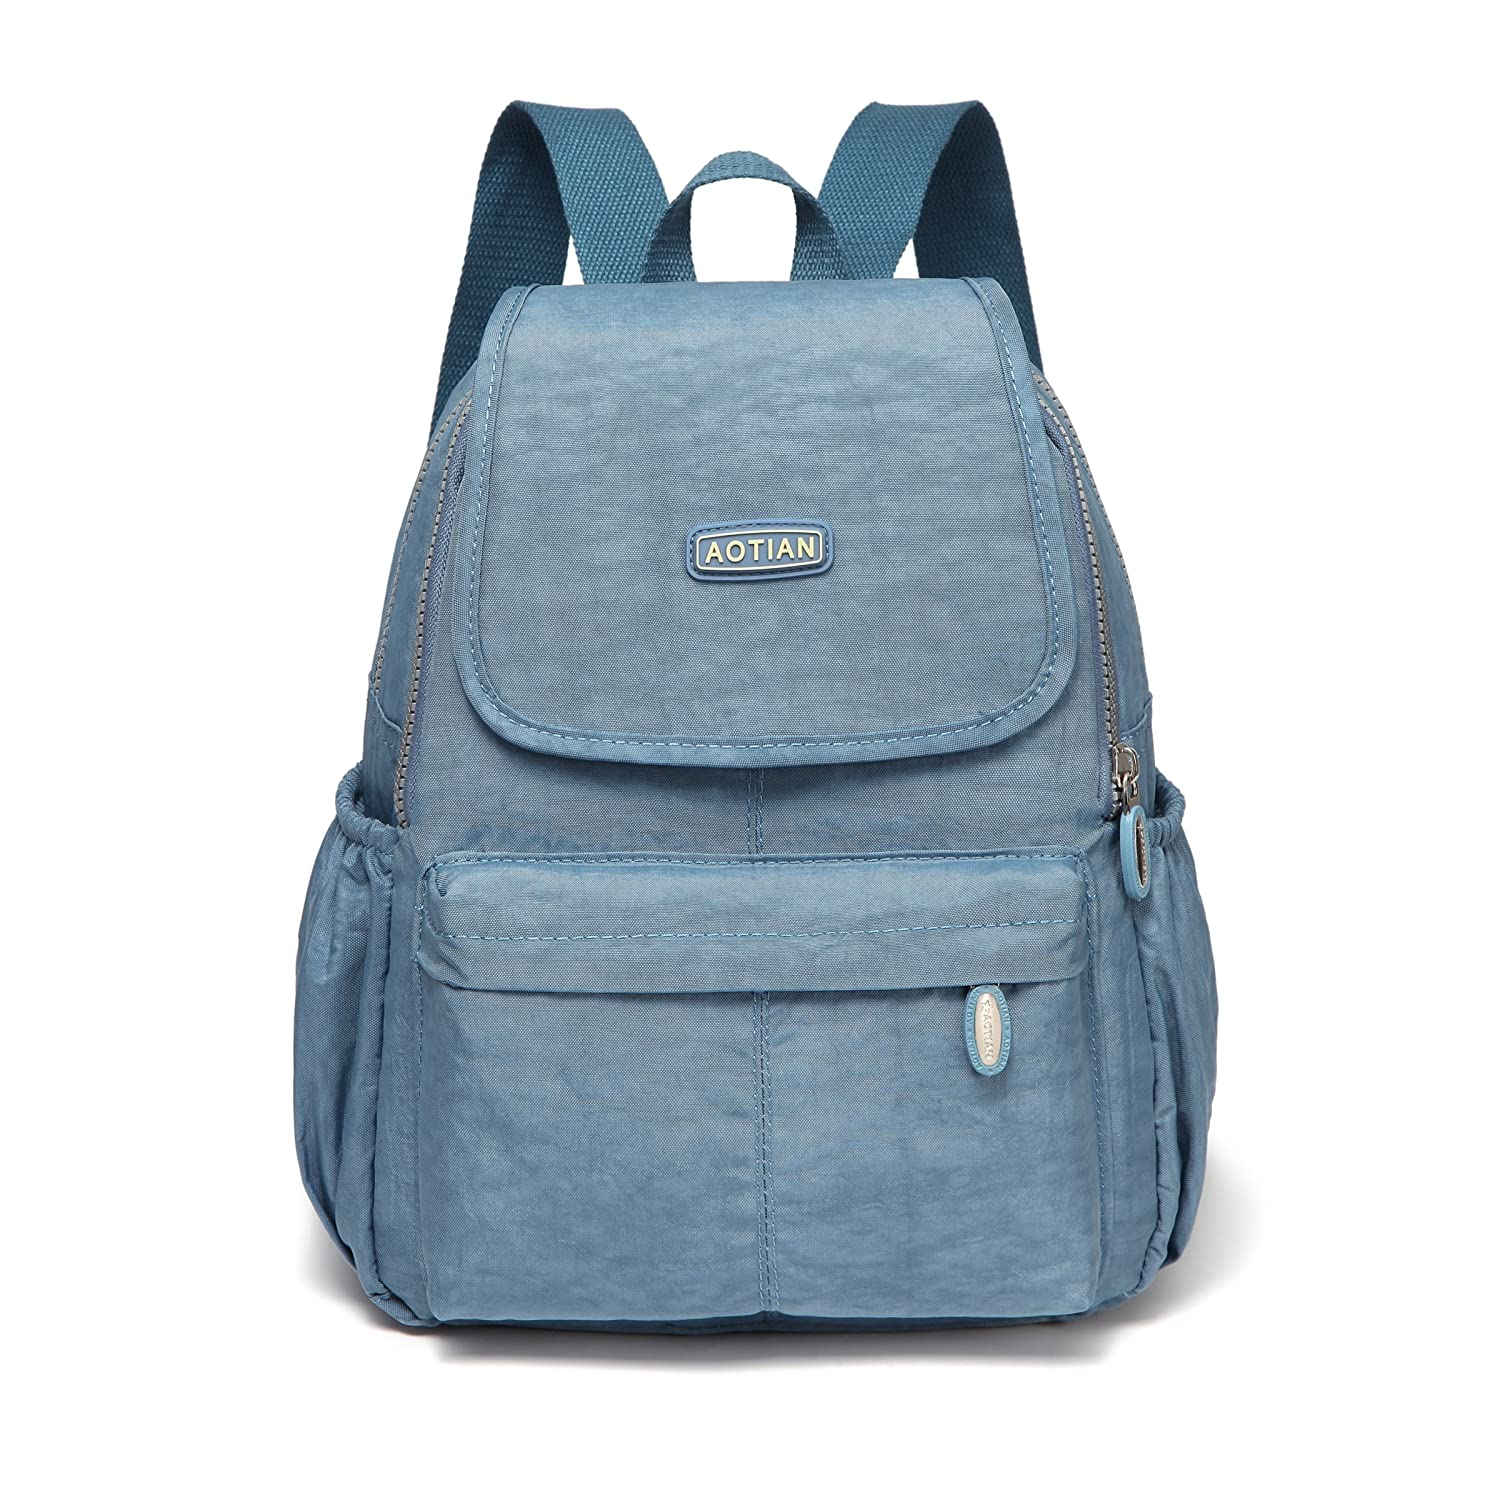 Top 10 Best Backpack For Amusement Parks - Buyer's Guide 9